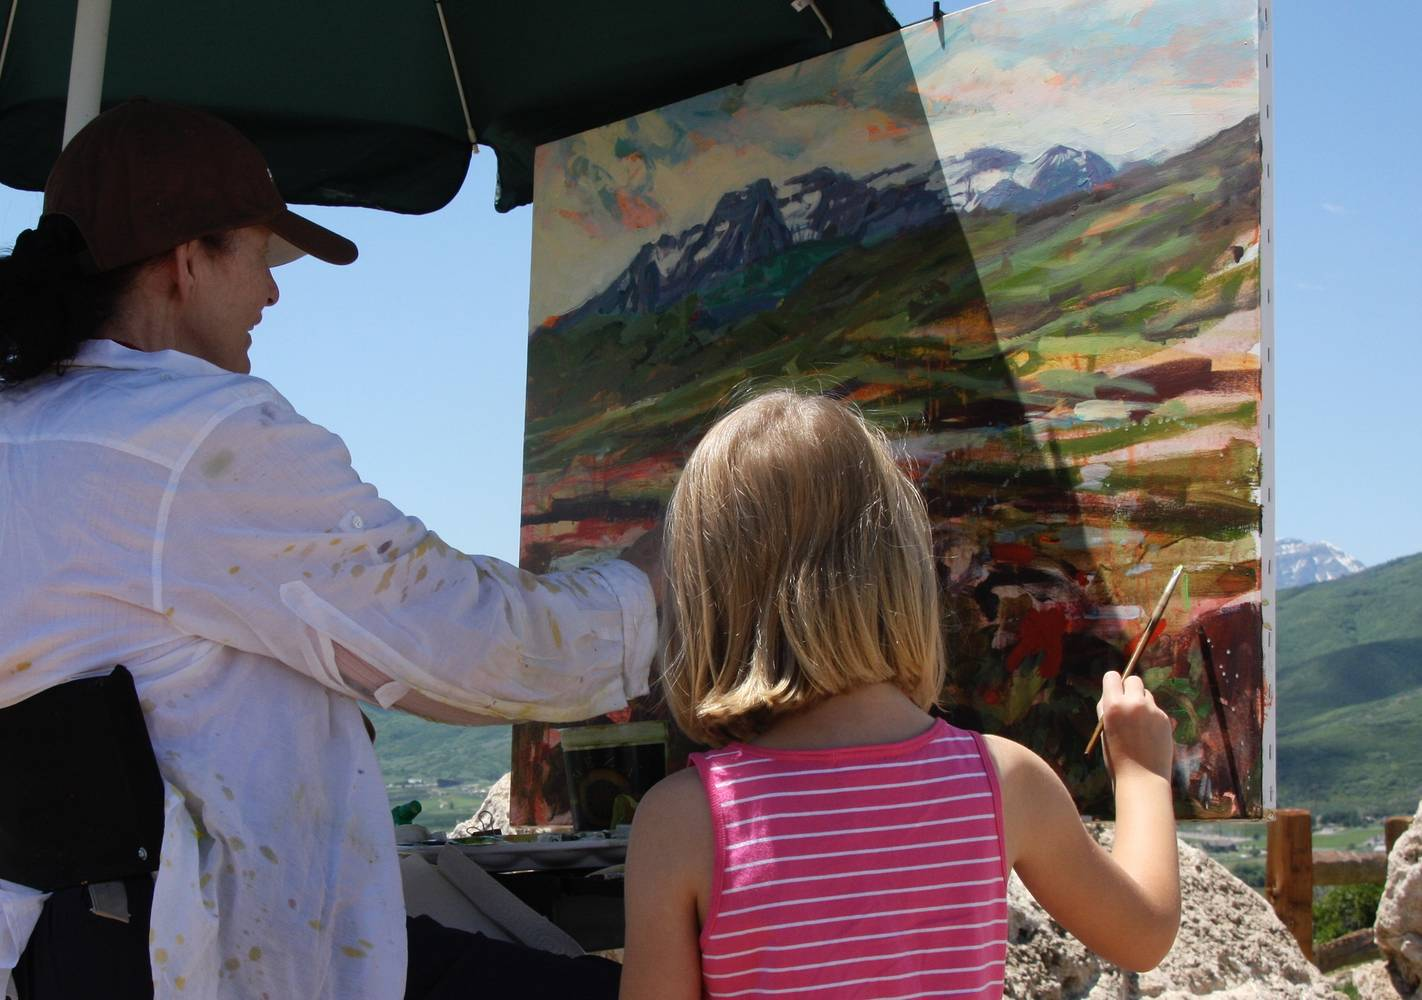 Painting the View from Memorial Hill, Midway, Utah by Susette Gertsch